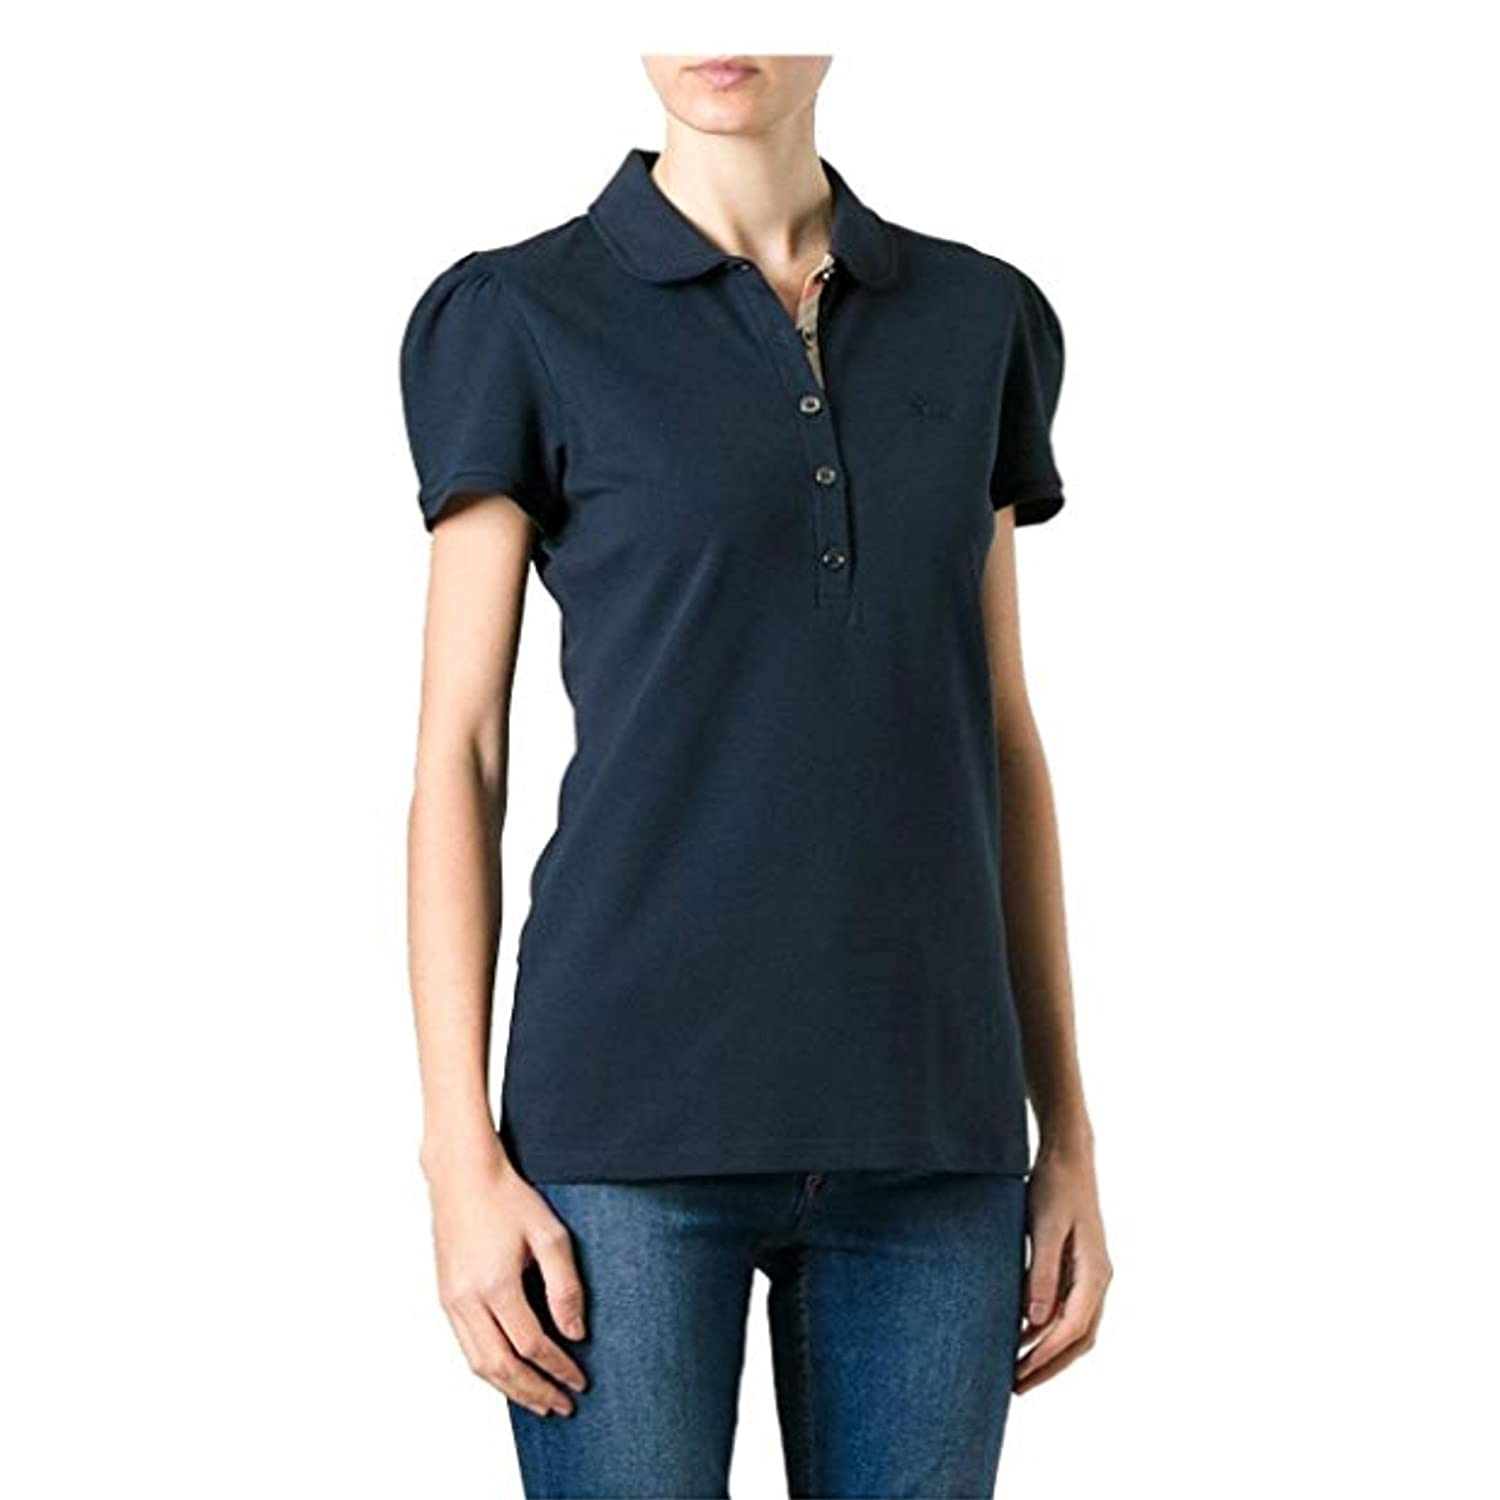 BURBERRY - Women's Polo YSM70254